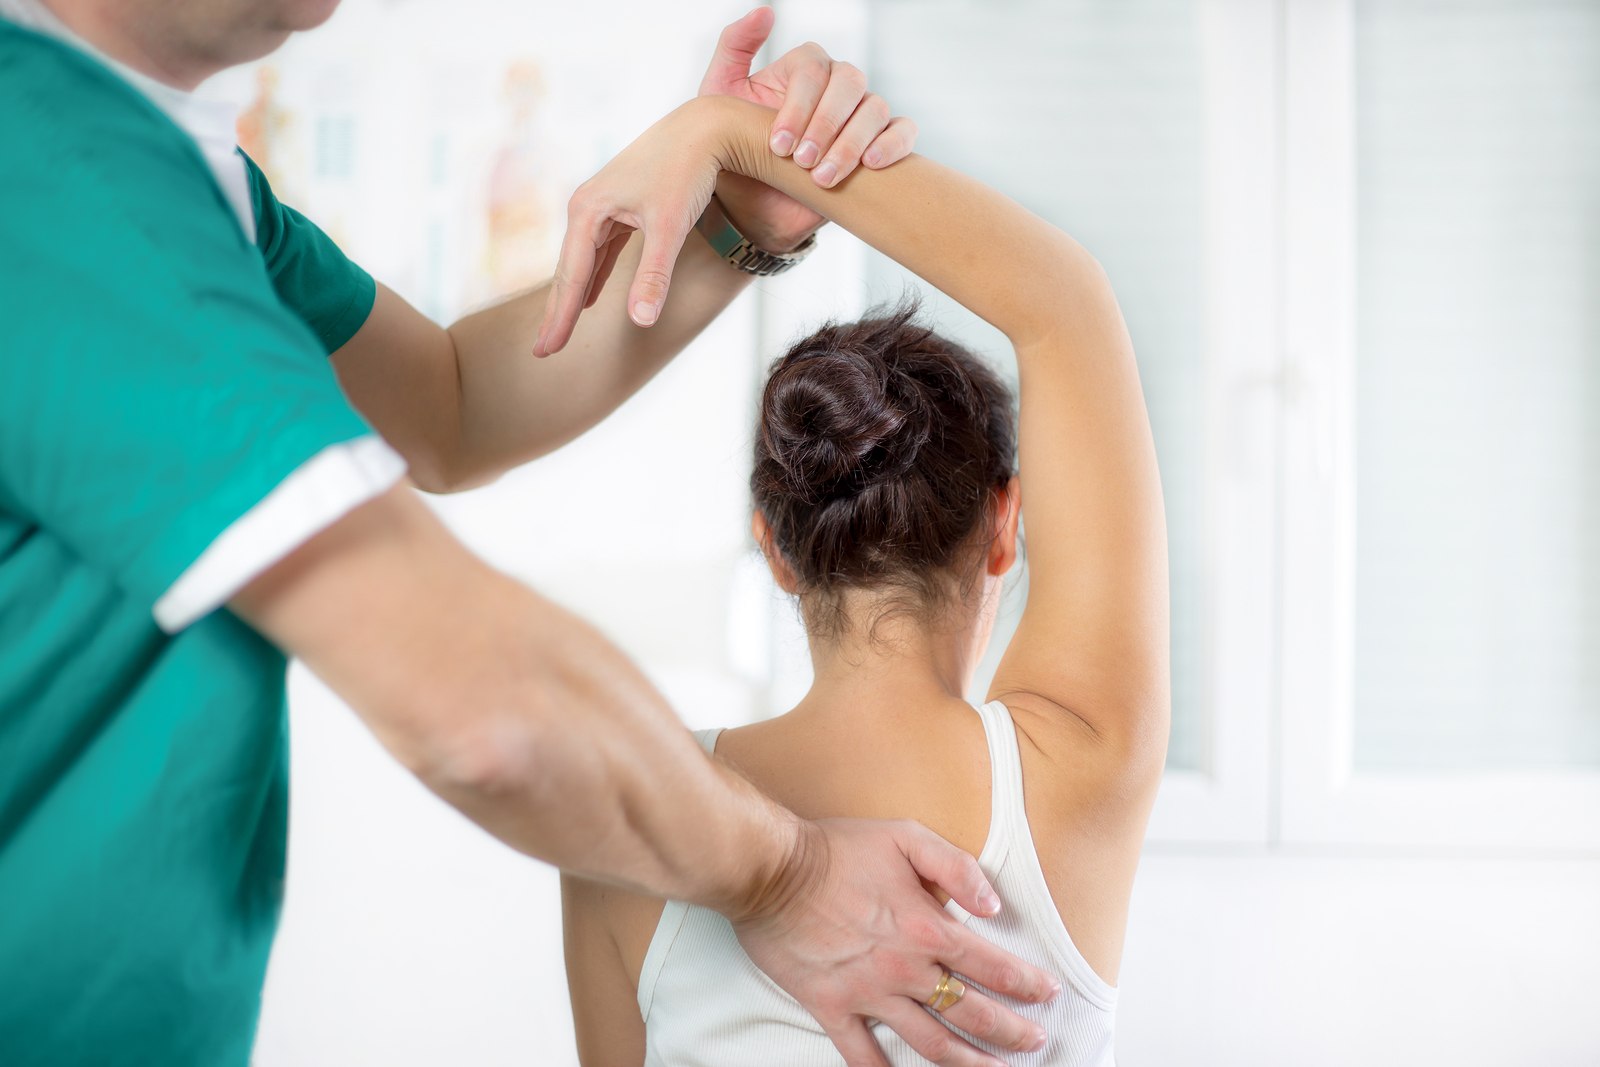 Are you looking for chiropractic or acupuncture services? Learn about the services provided by our chiropractor and acupuncturist in Orlando; call us now!